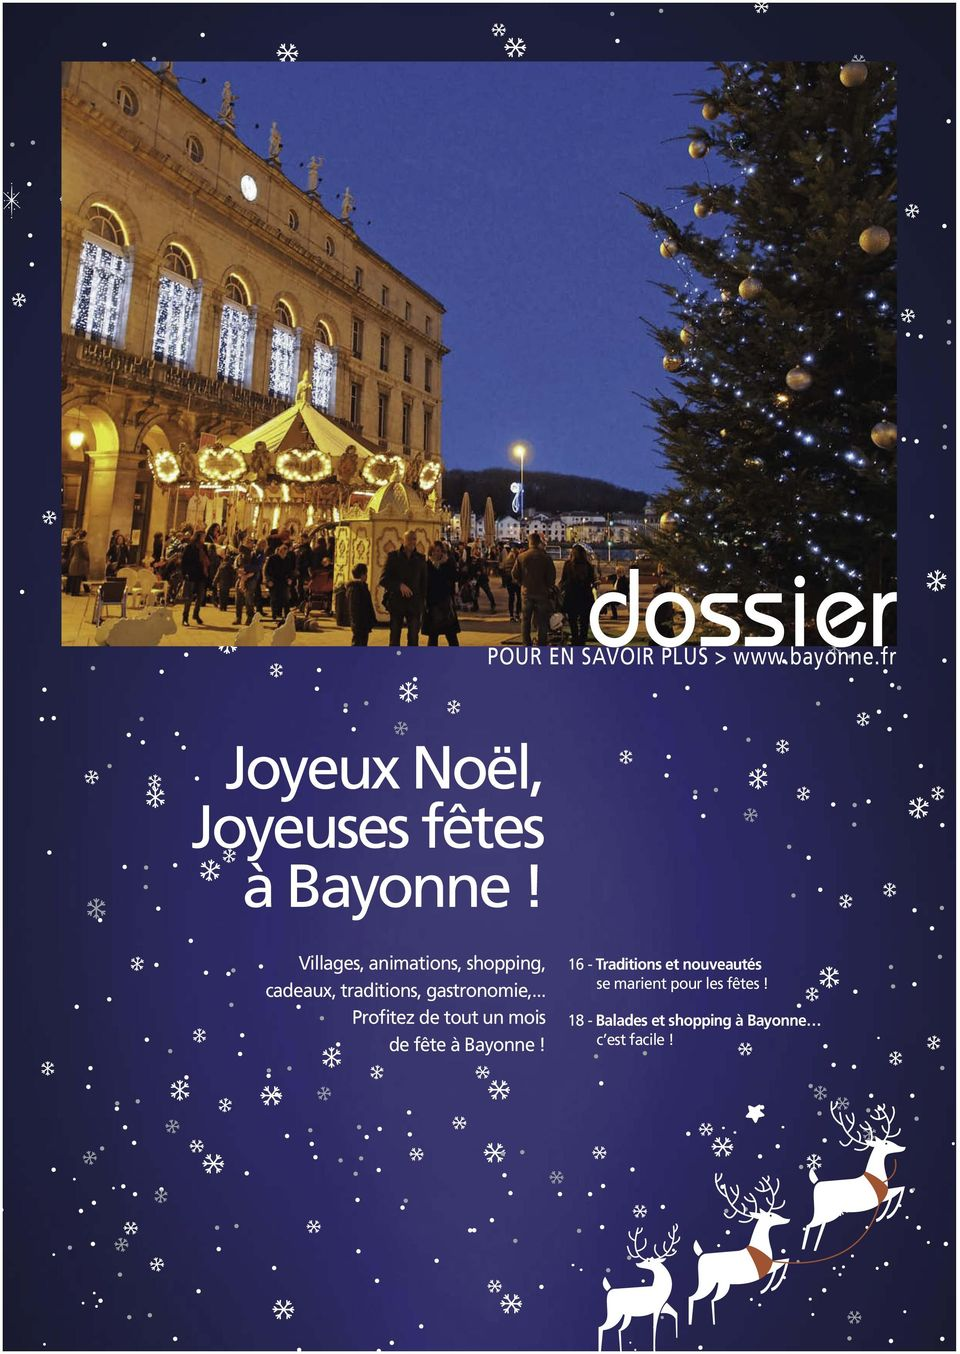 Villages, animations, shopping, cadeaux, traditions, gastronomie,.